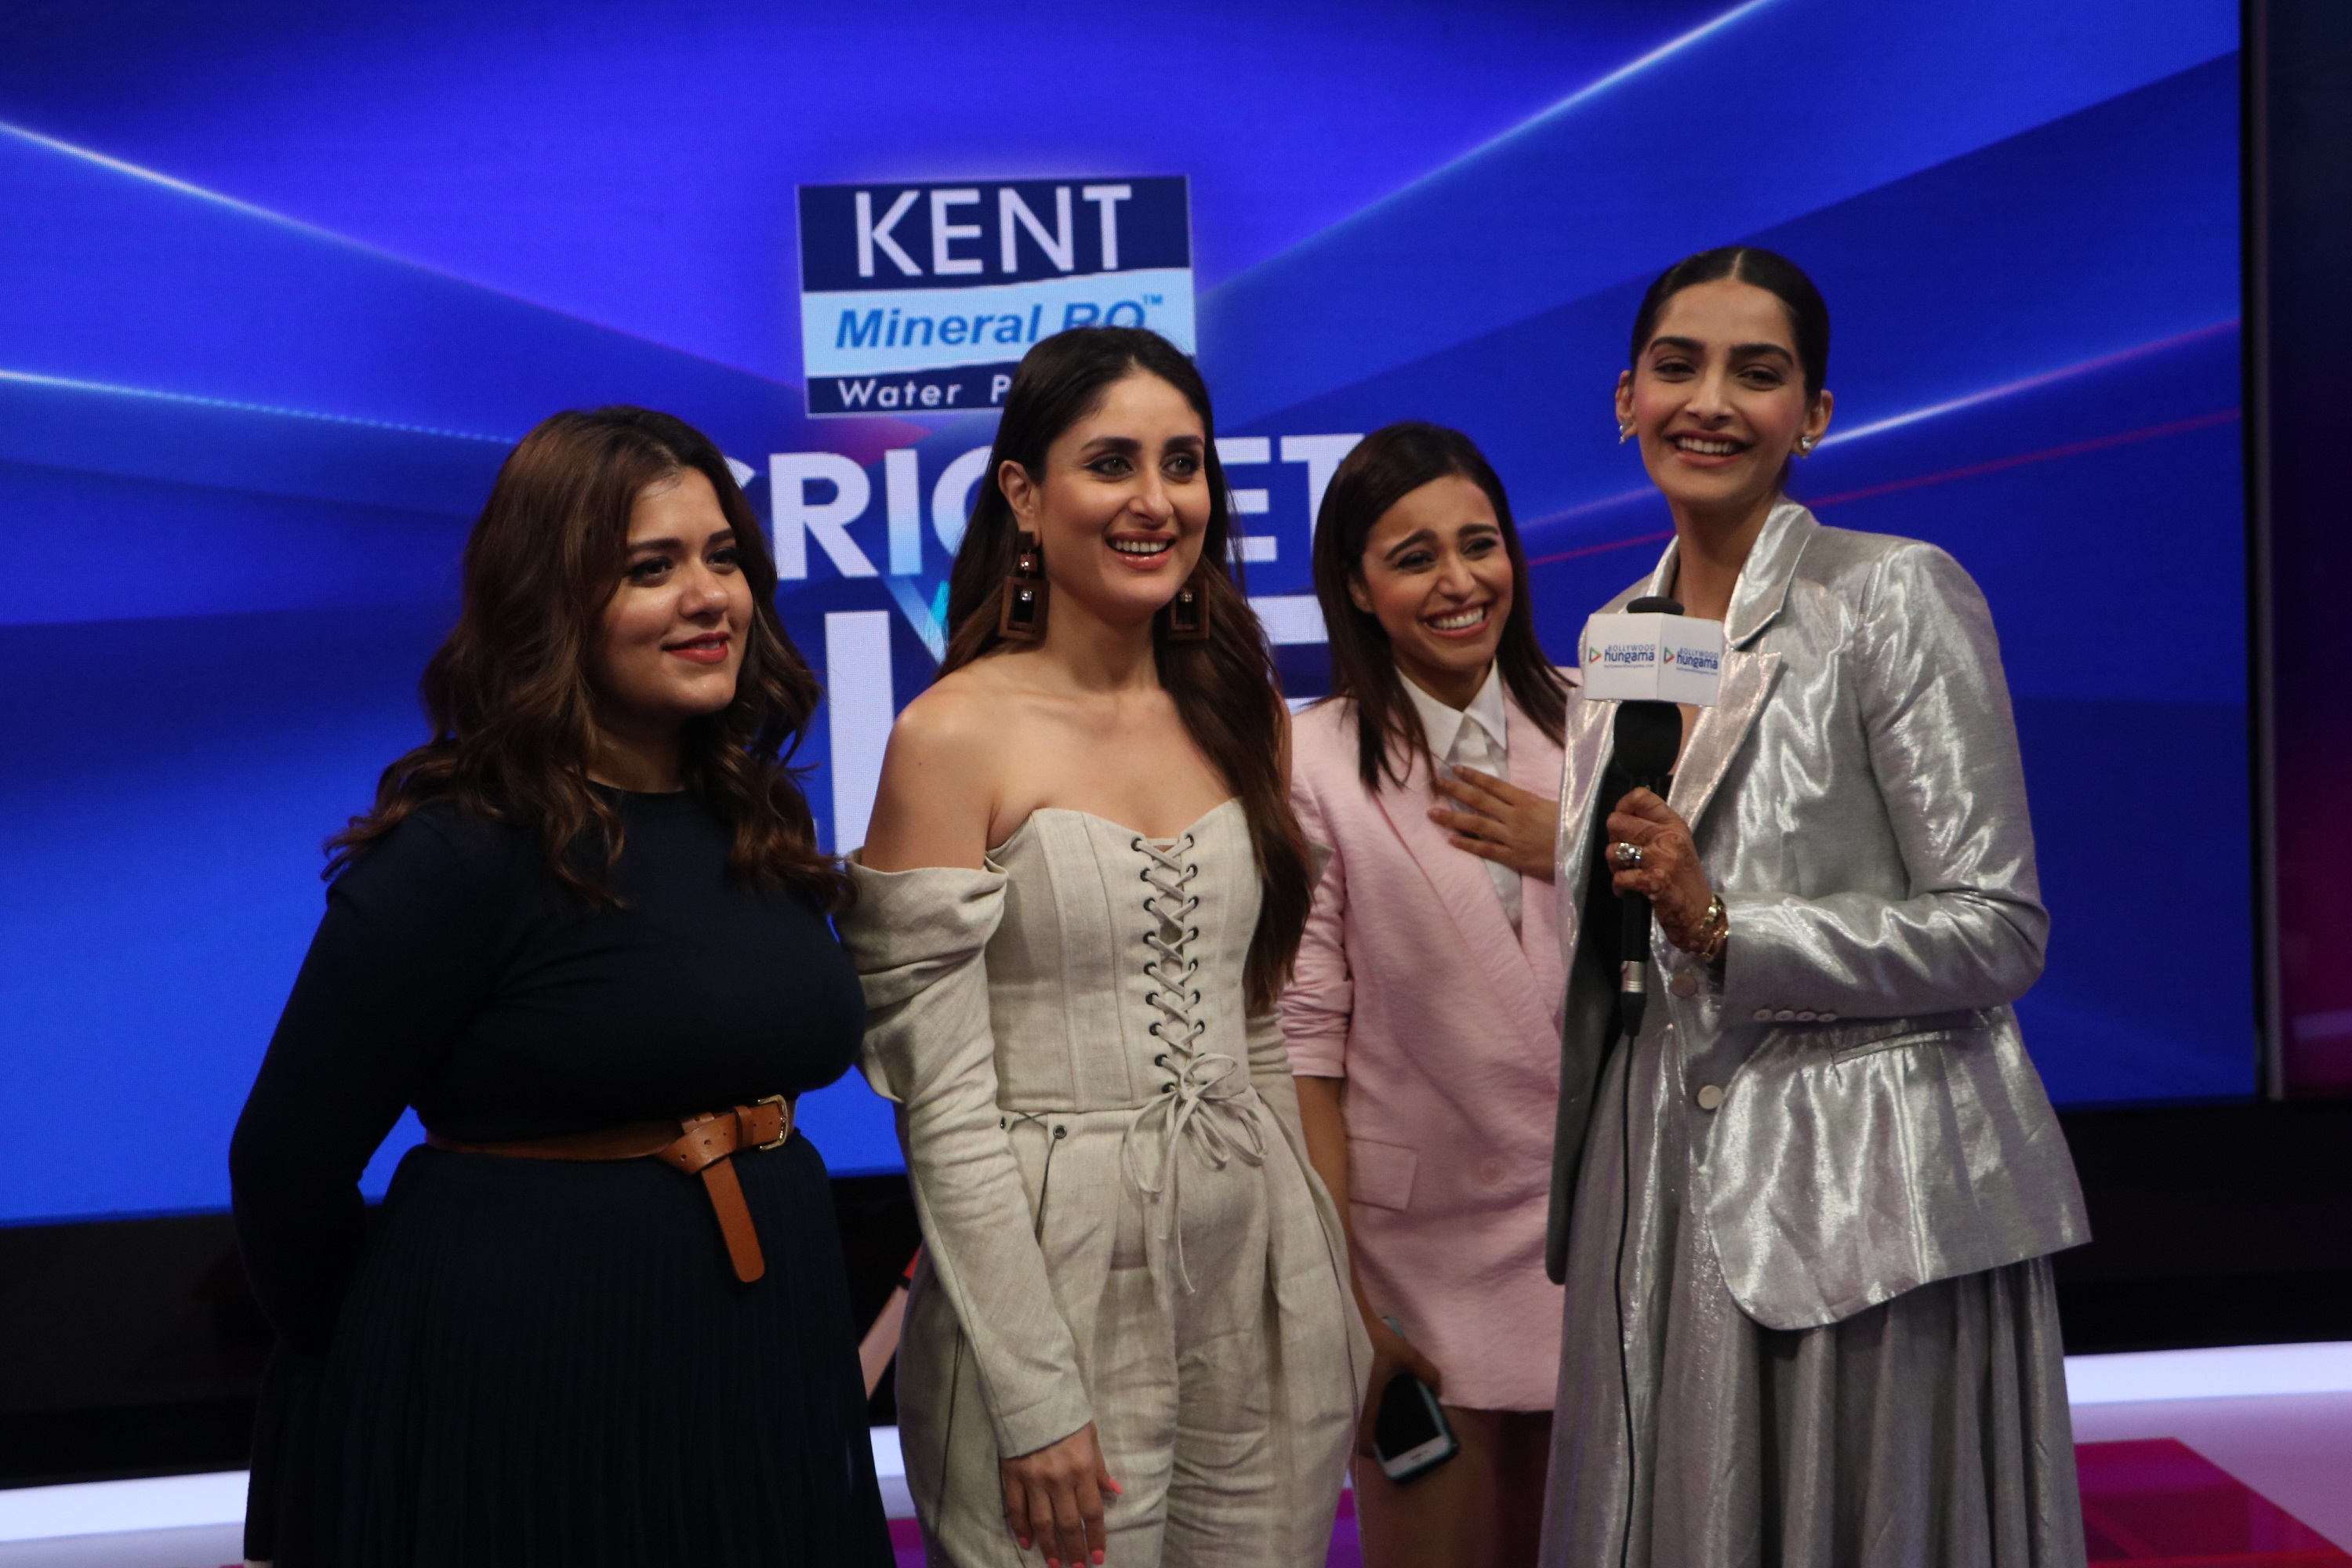 shikha-talsania-kareena-kapoor-khan-swara-bhaskar-and-sonam-kapoor-at-kent-cricket-live-on-star-sports-network